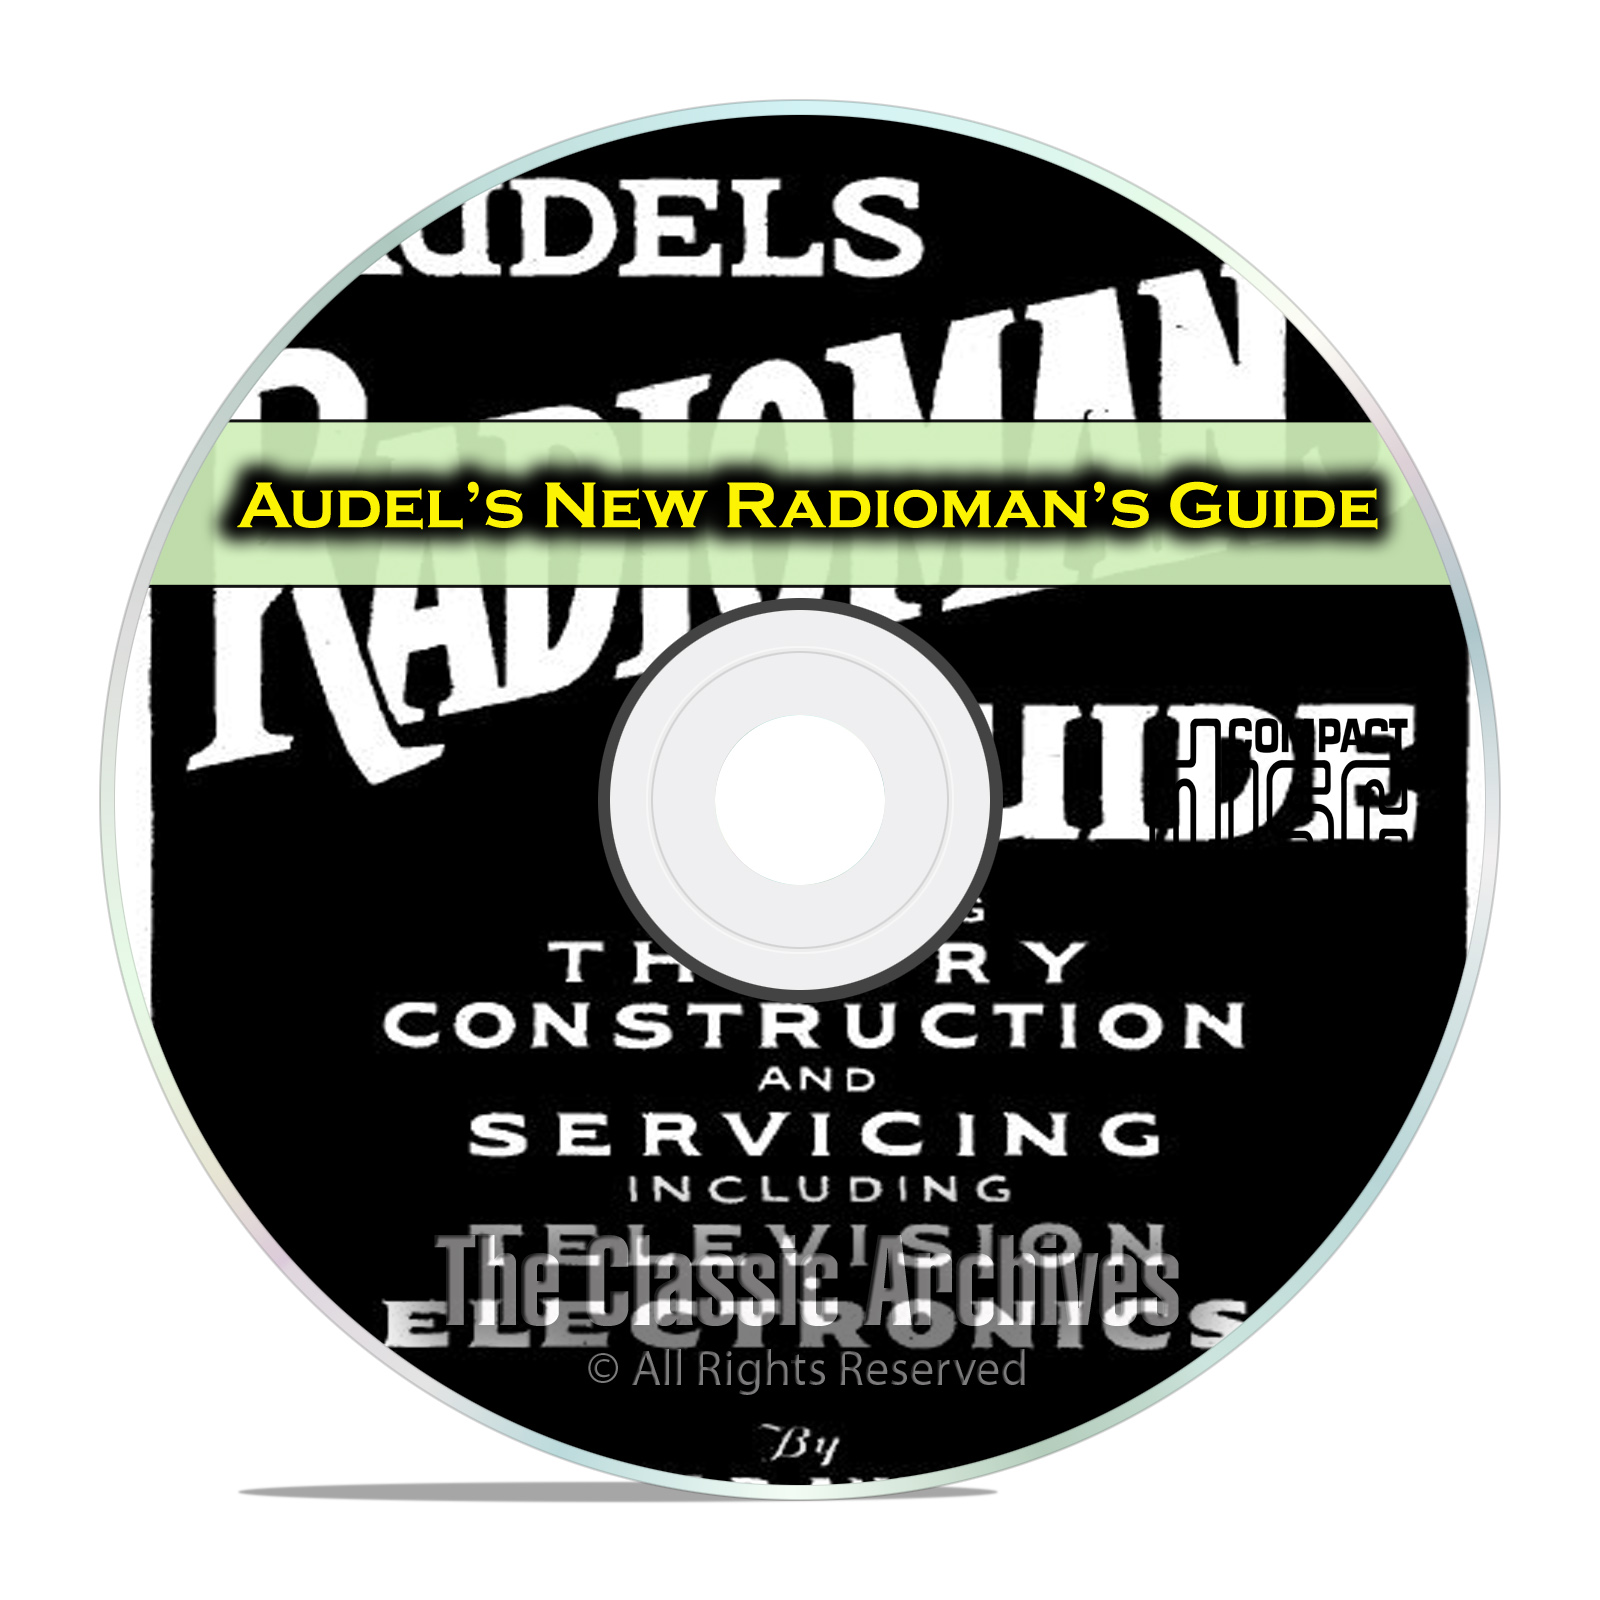 Audel's New Radioman's Guide, Tube Radio Servicing, OTR, Rider PDF CD